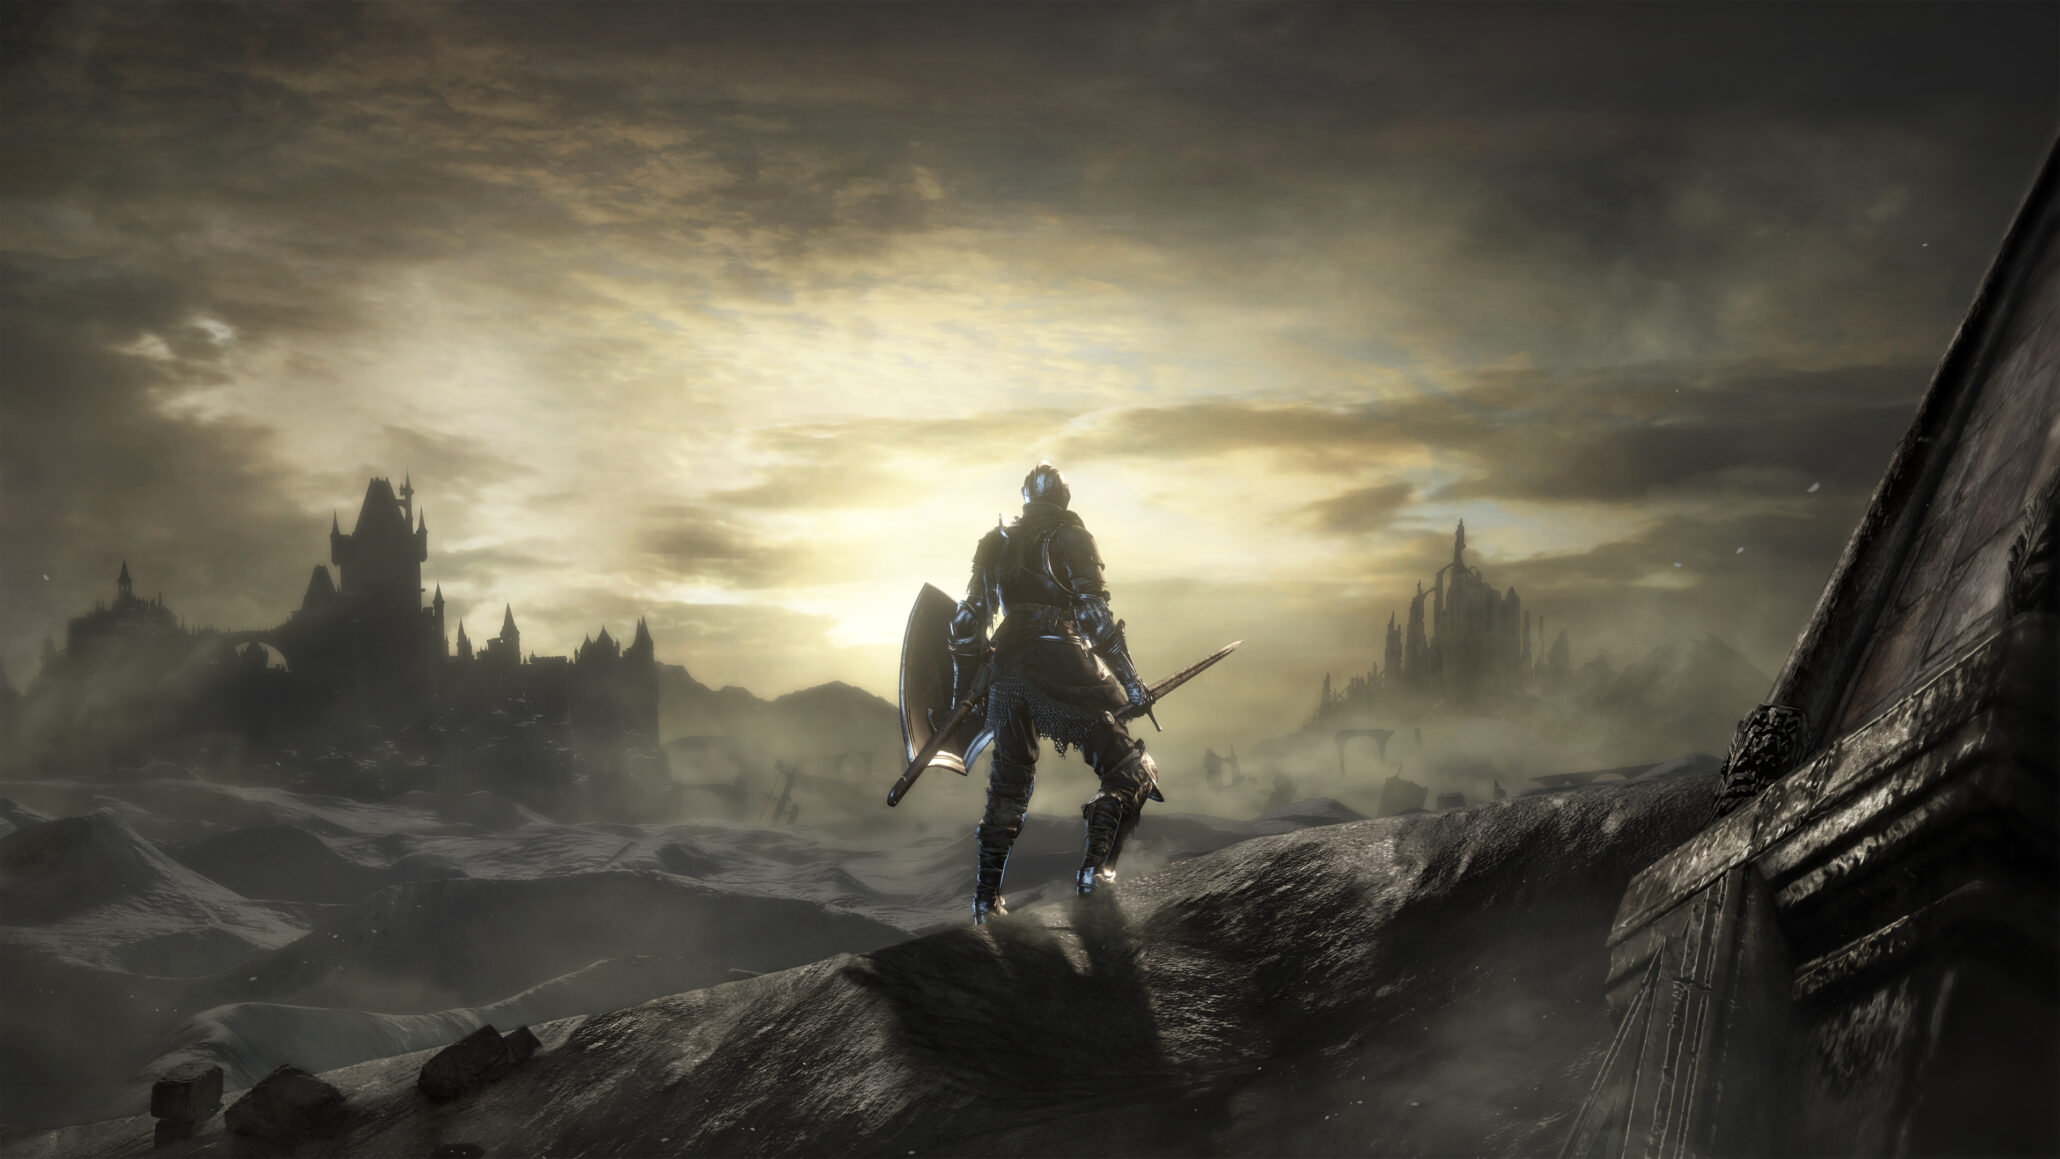 Dark Souls 3 Cut Content Showcased In Brand New Video